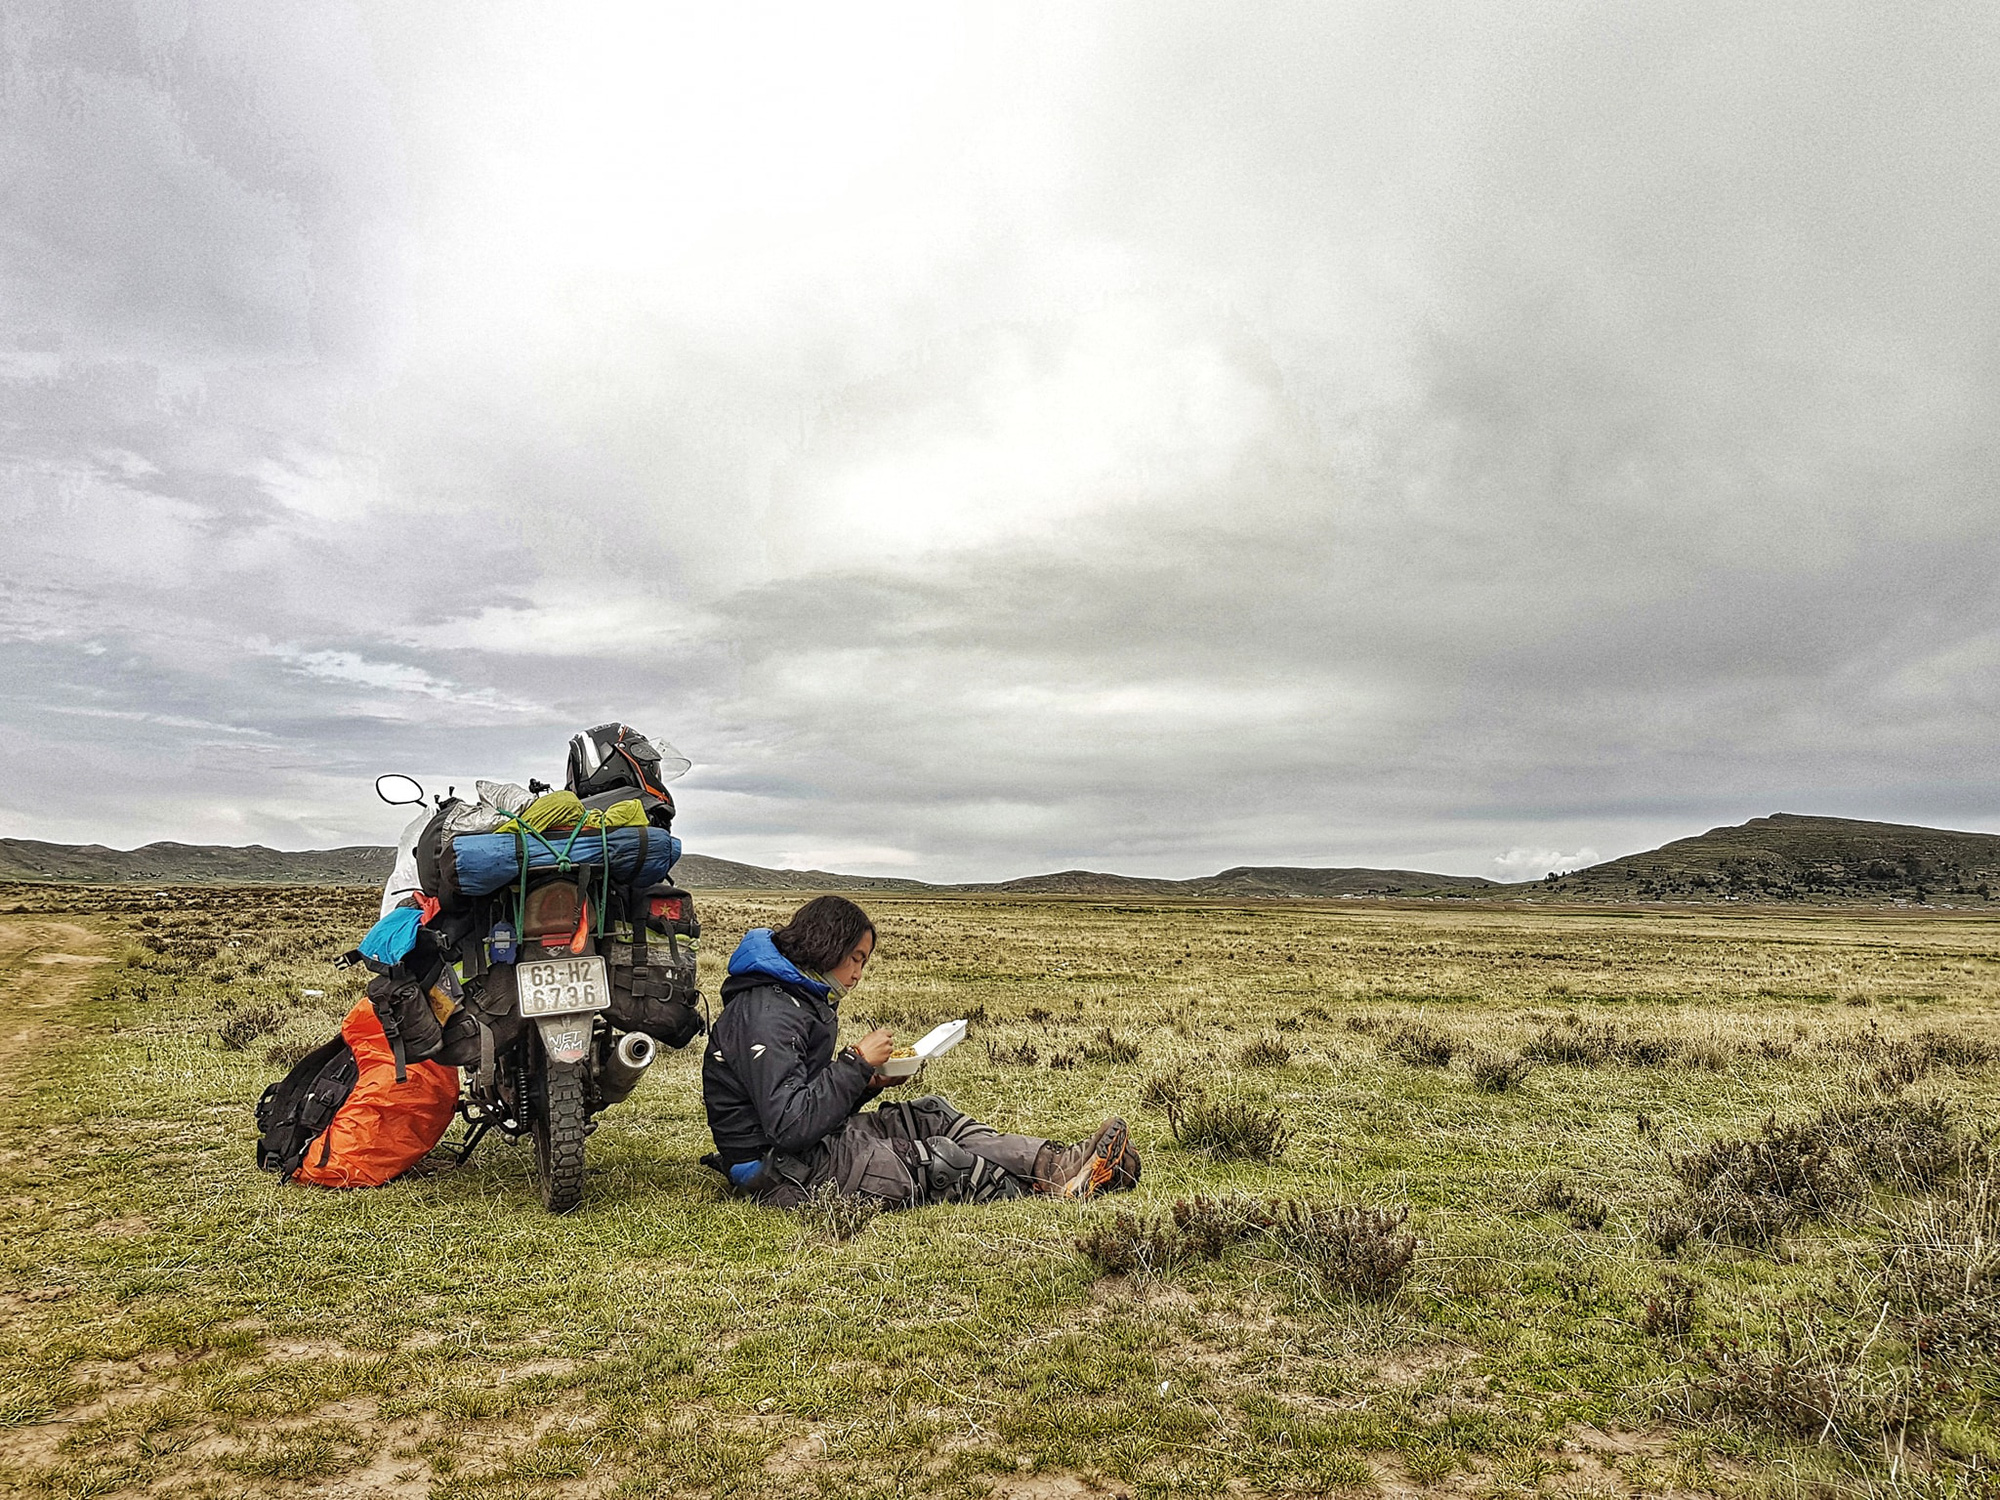 Vietnamese globetrotter Tran Dang Dang Khoa takes a break, sitting beside his bike to have lunch in an open field during his journey around the world in a photo posted to his verified Facebook account.